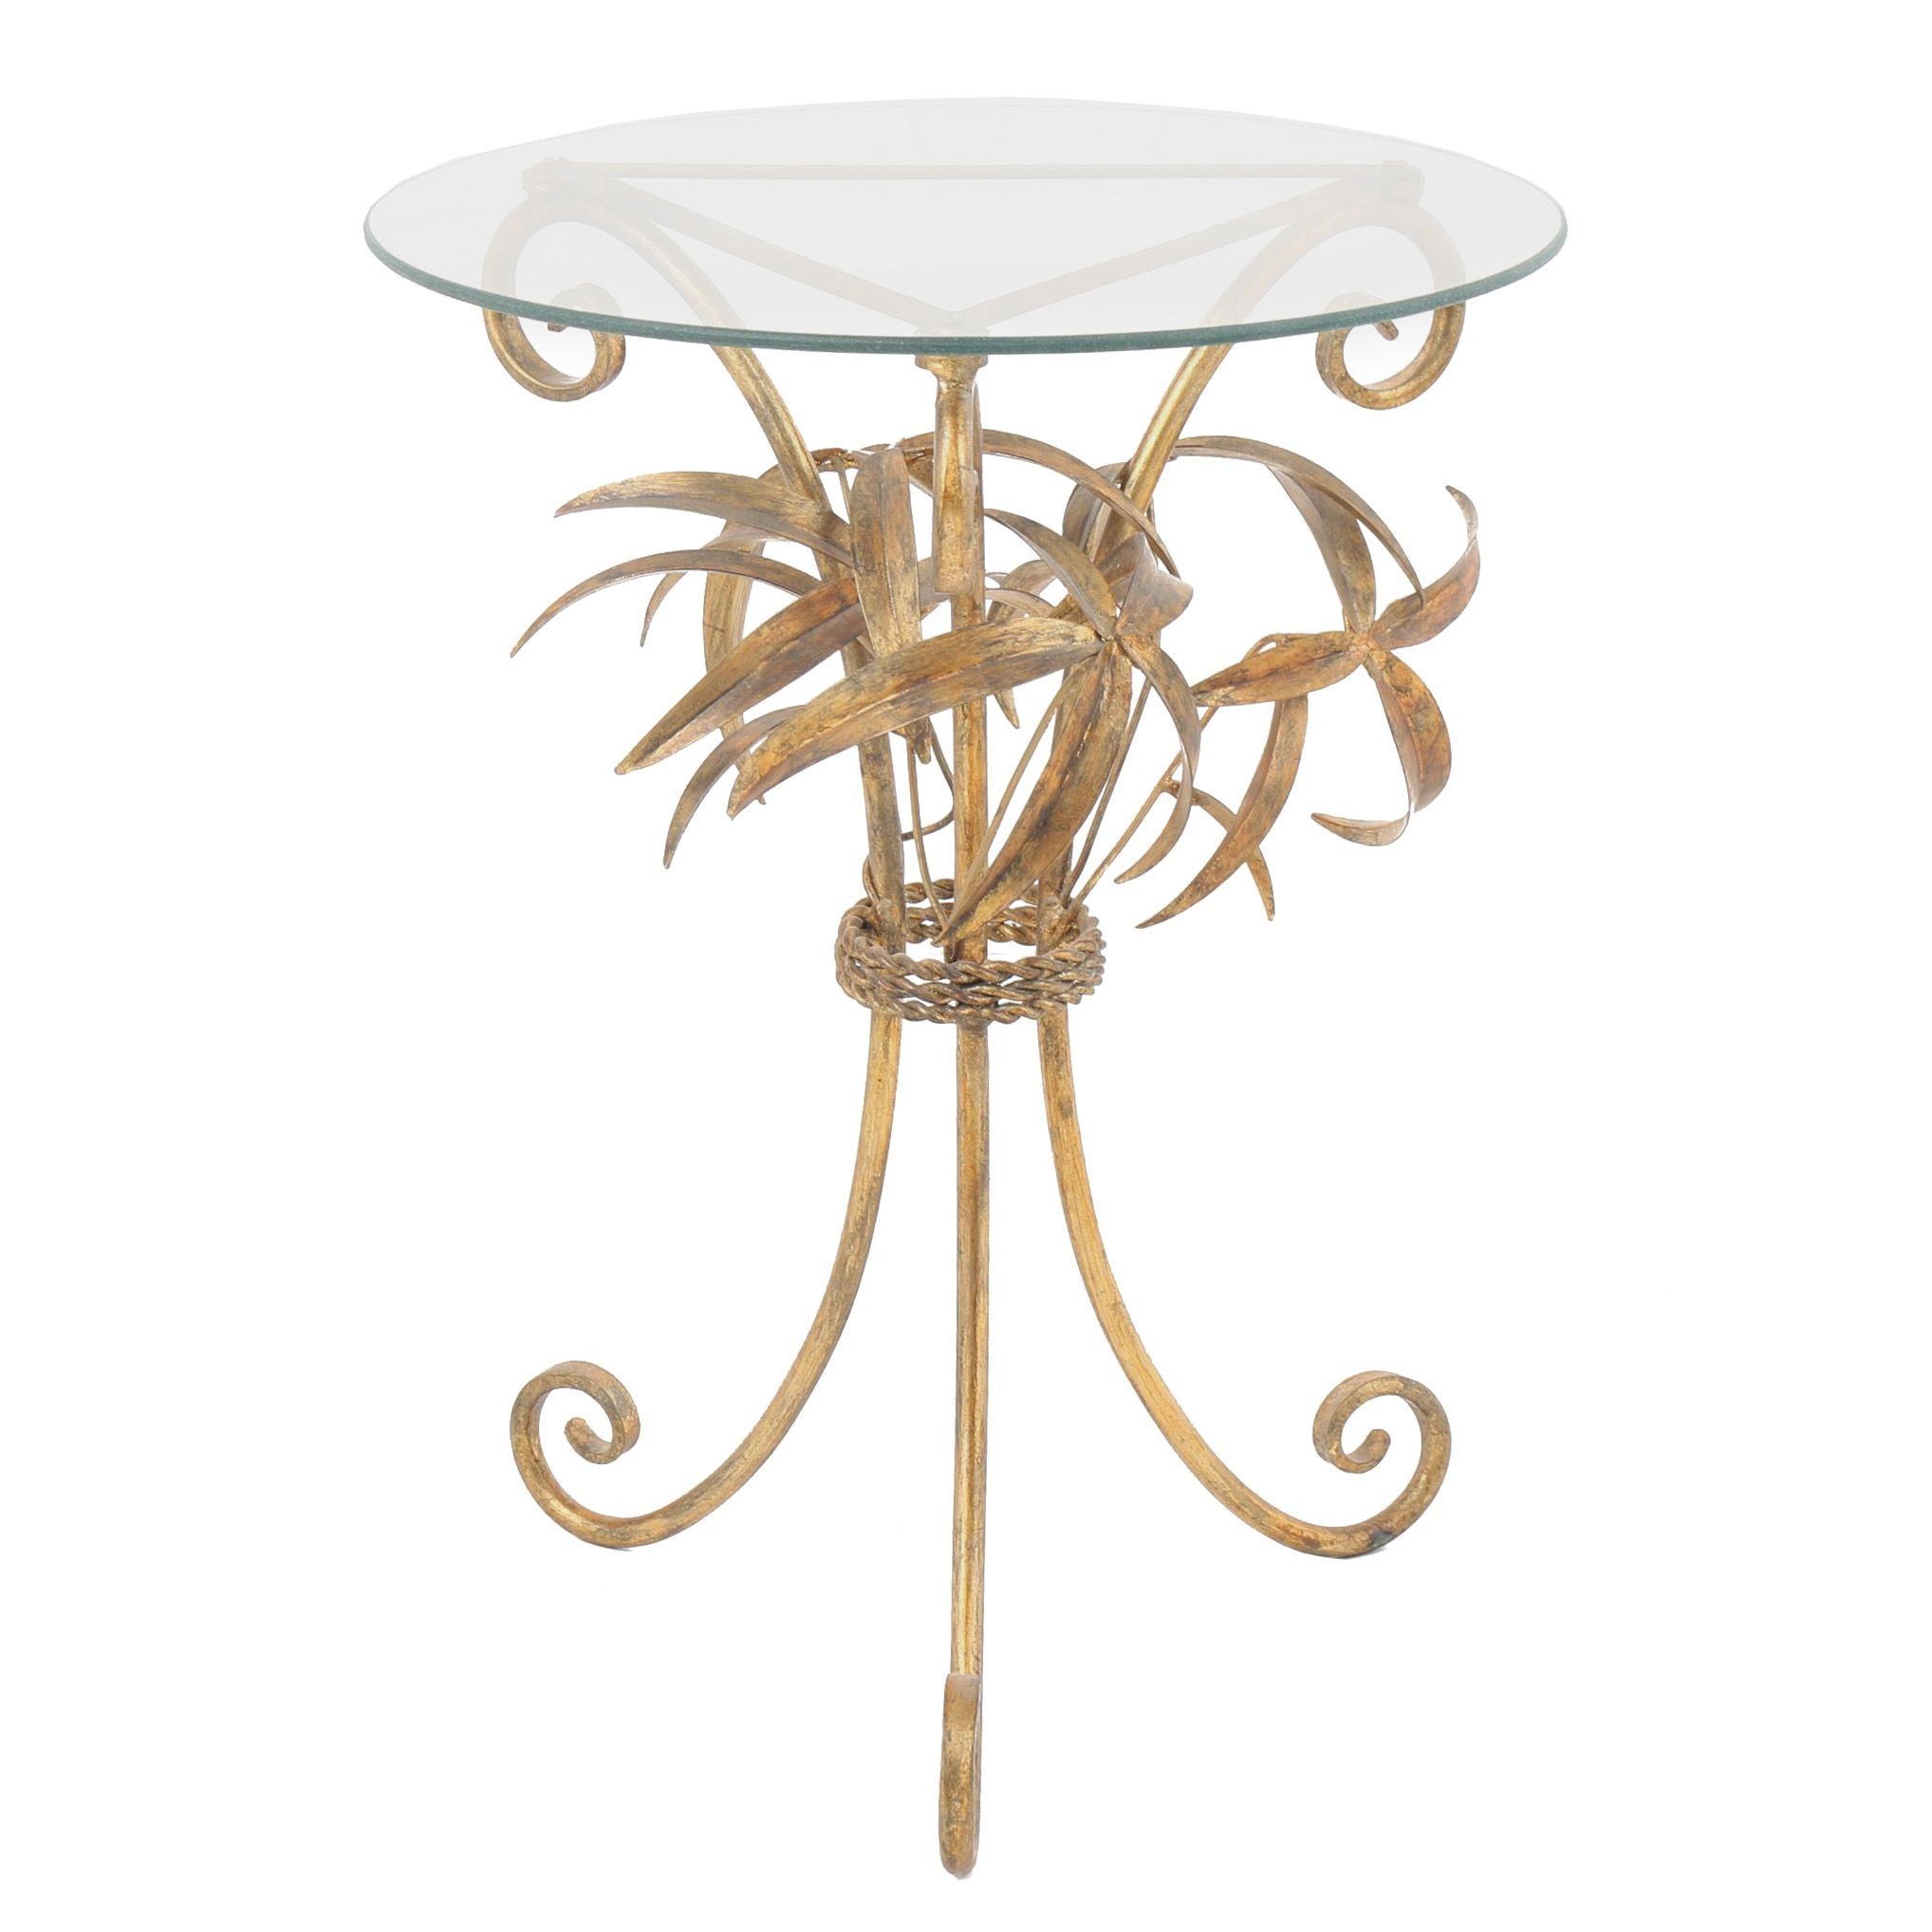 Hollywood Regency Style Leaf Sheaf Metal & Glass Side Table, 20th/21st Century